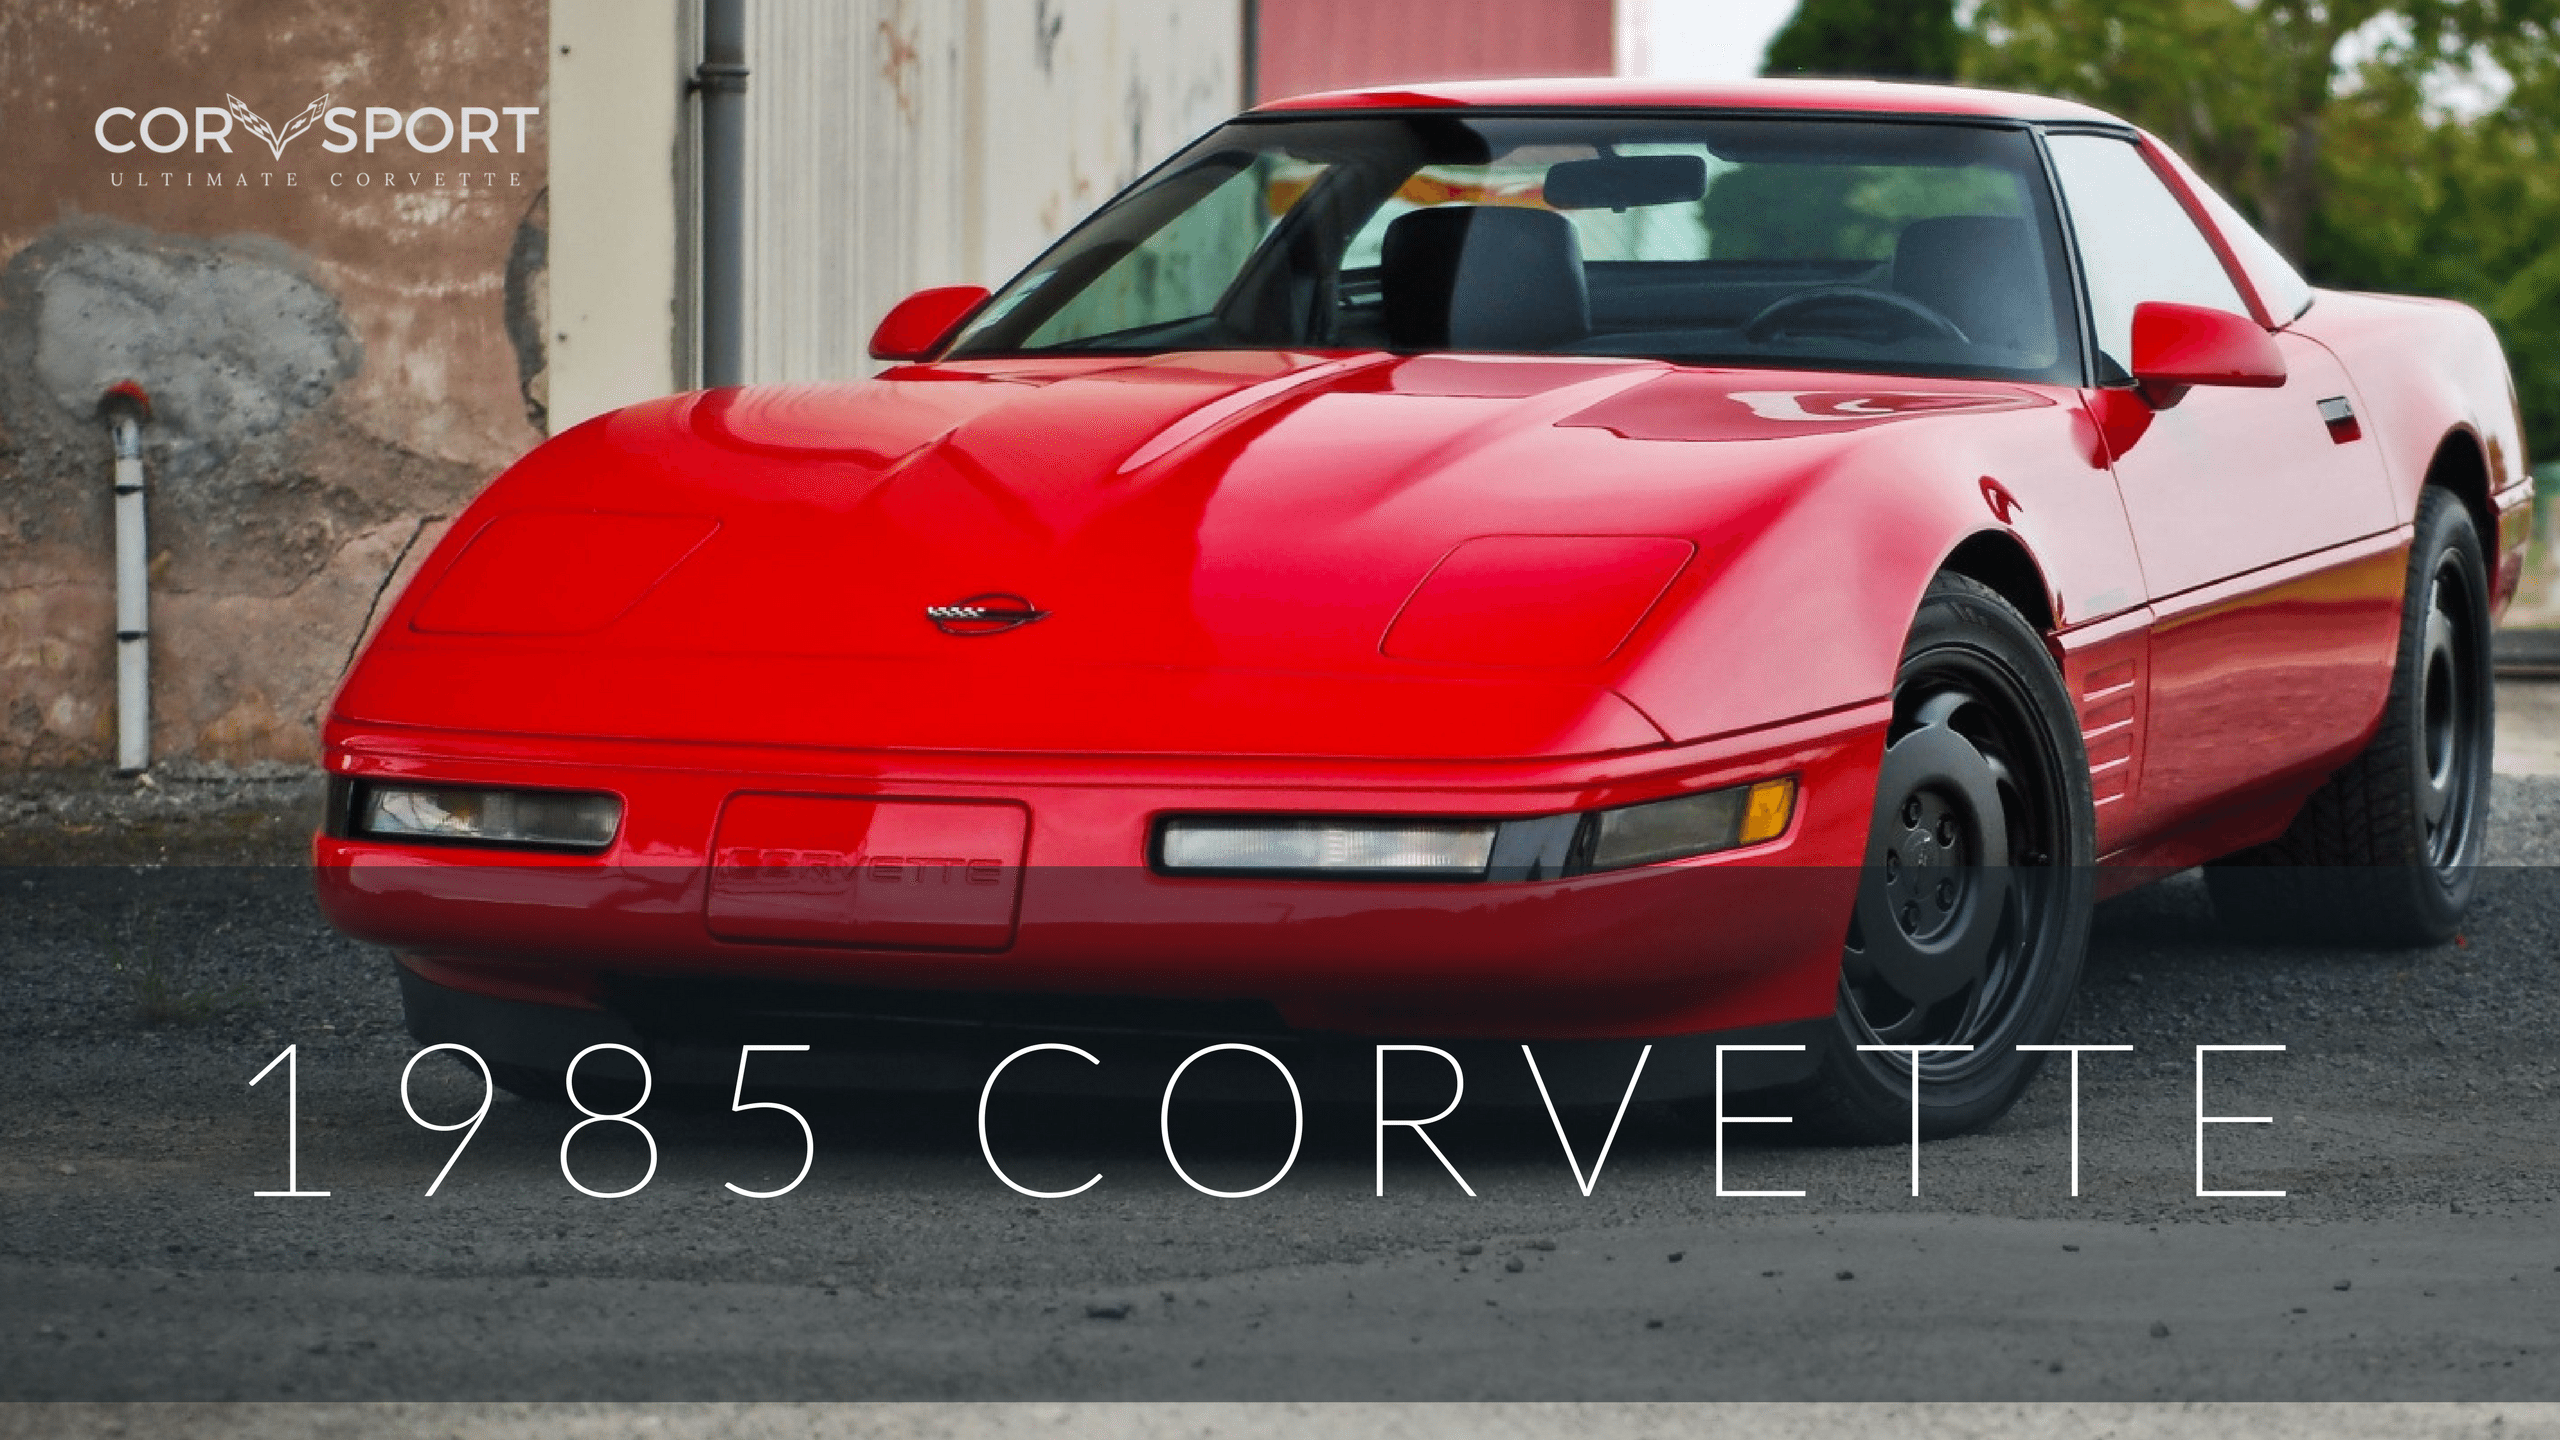 1985 Corvette Tile 1994 c4 corvette ultimate guide (overview, specs, vin info 1994 LT1 Corvette at webbmarketing.co